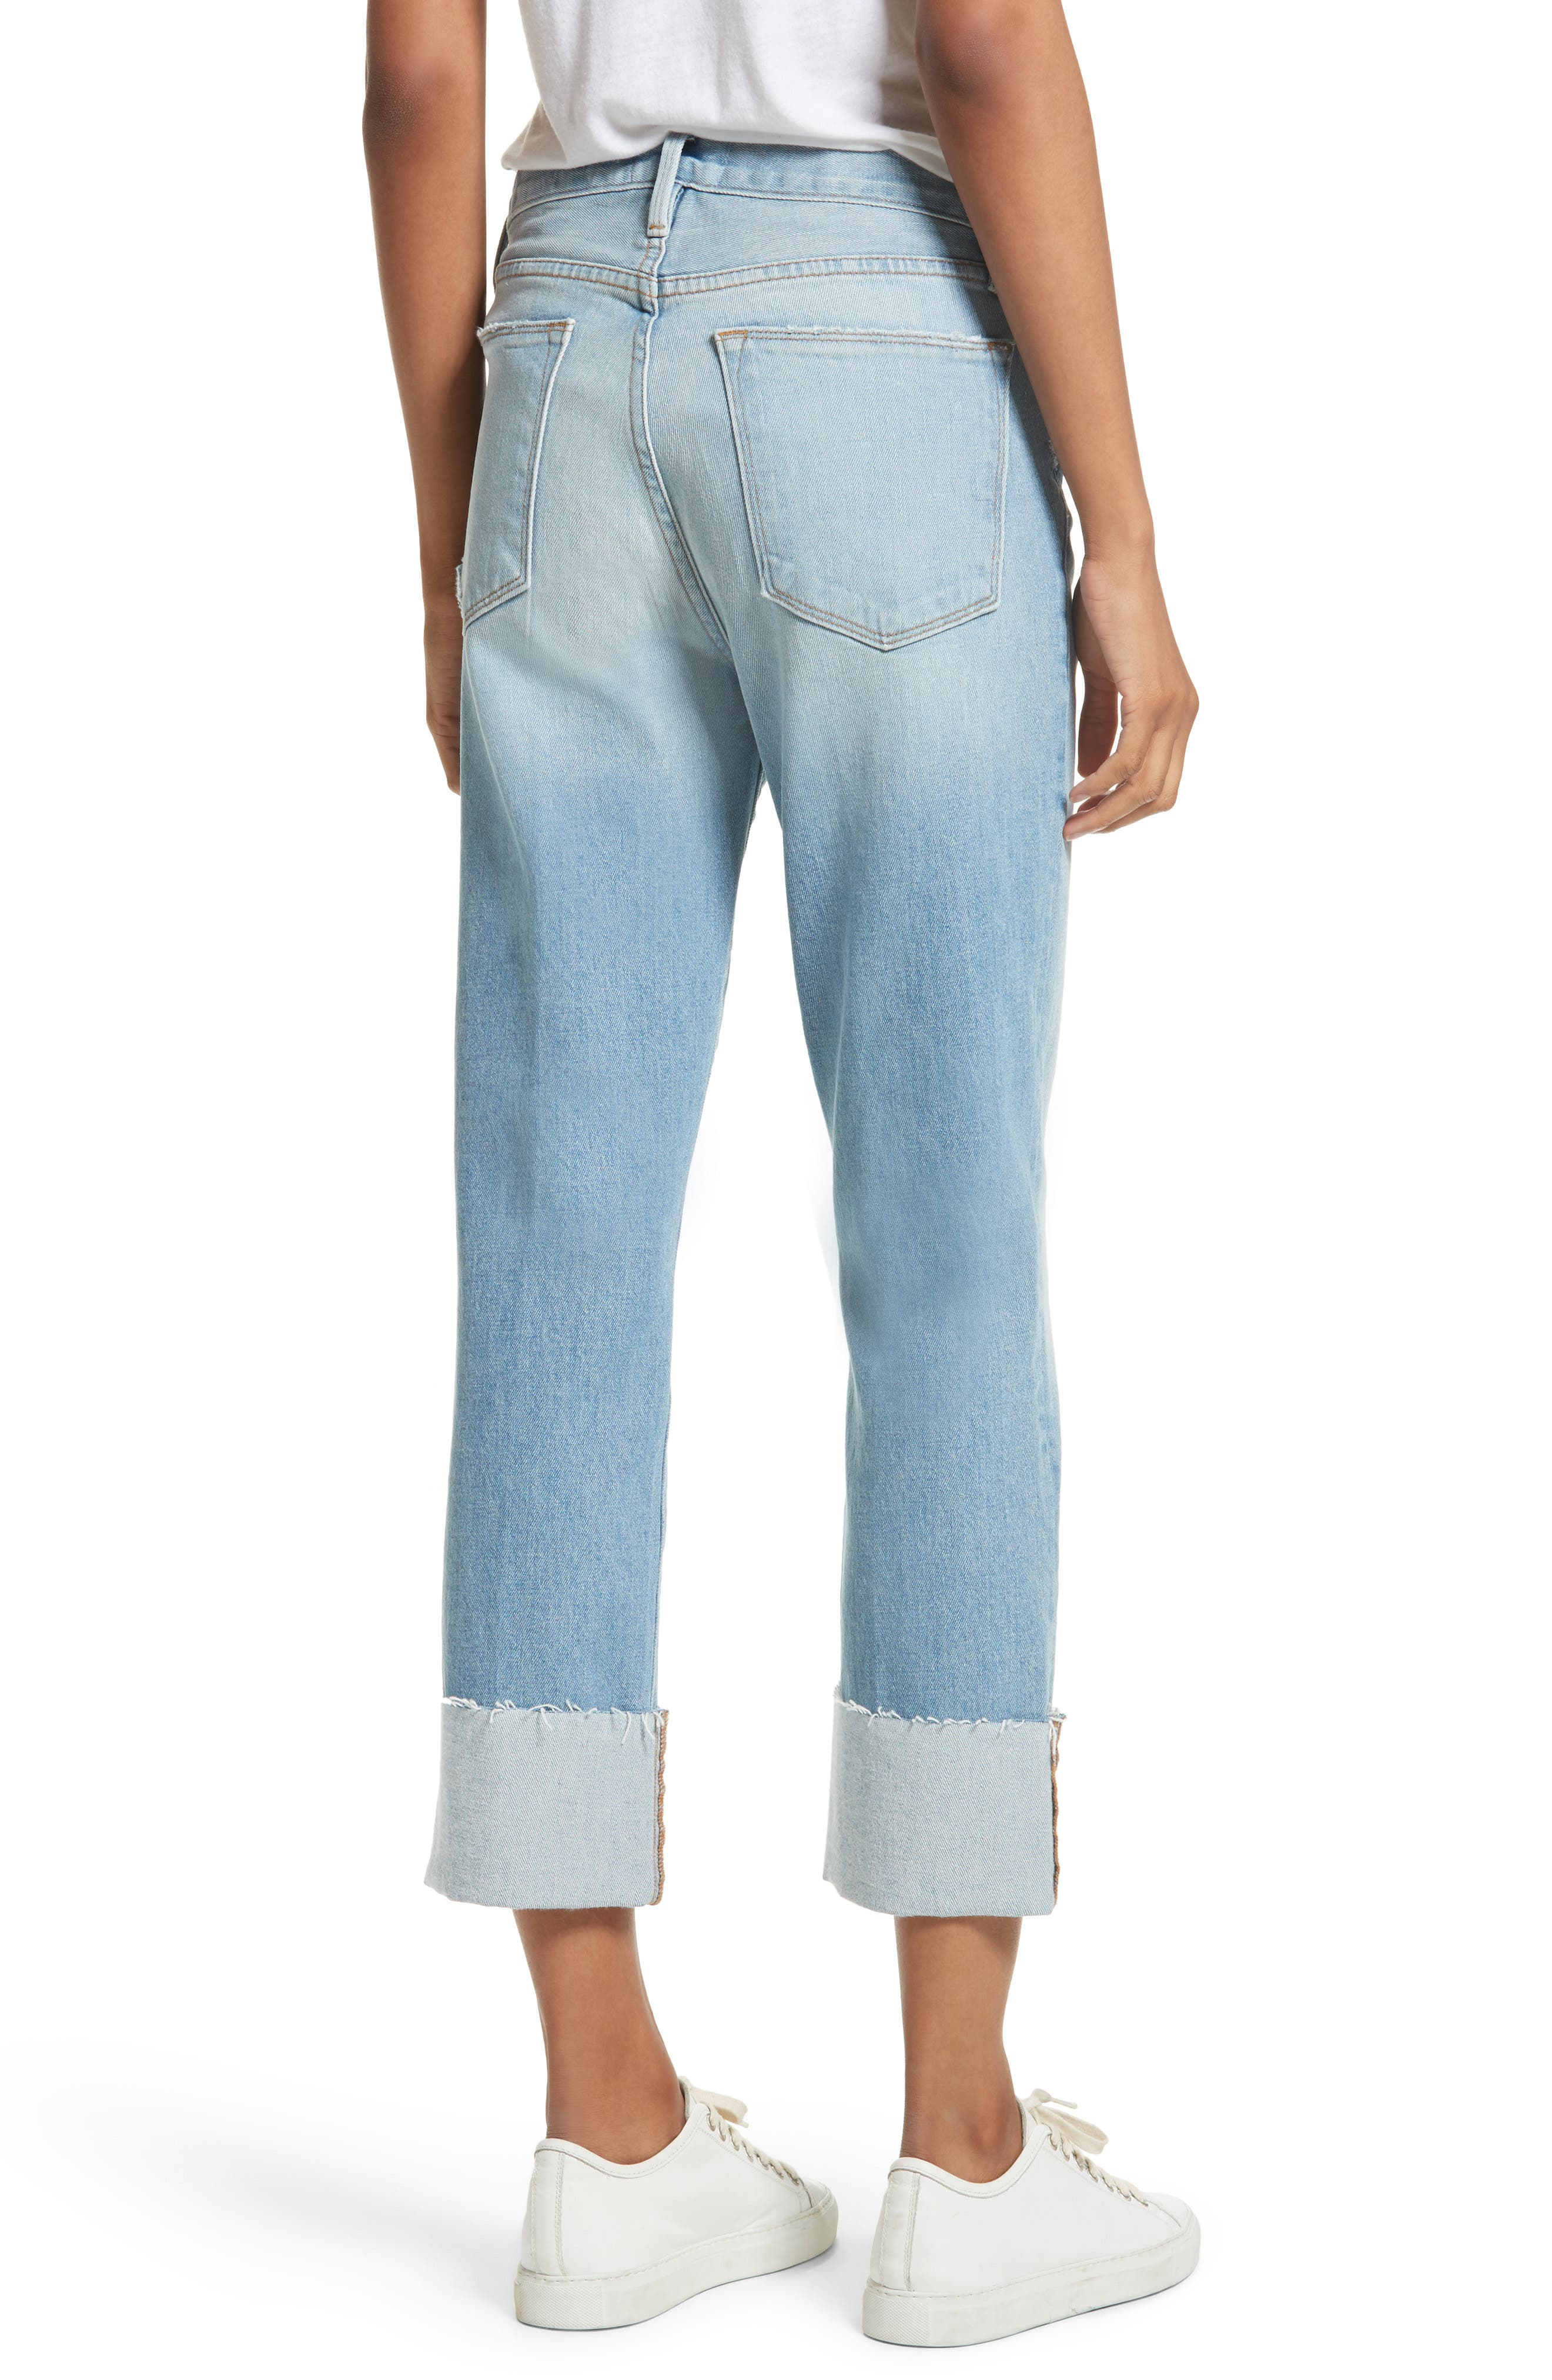 Le High Straight Leg Cuffed Jeans,                             Alternate thumbnail 2, color,                             450